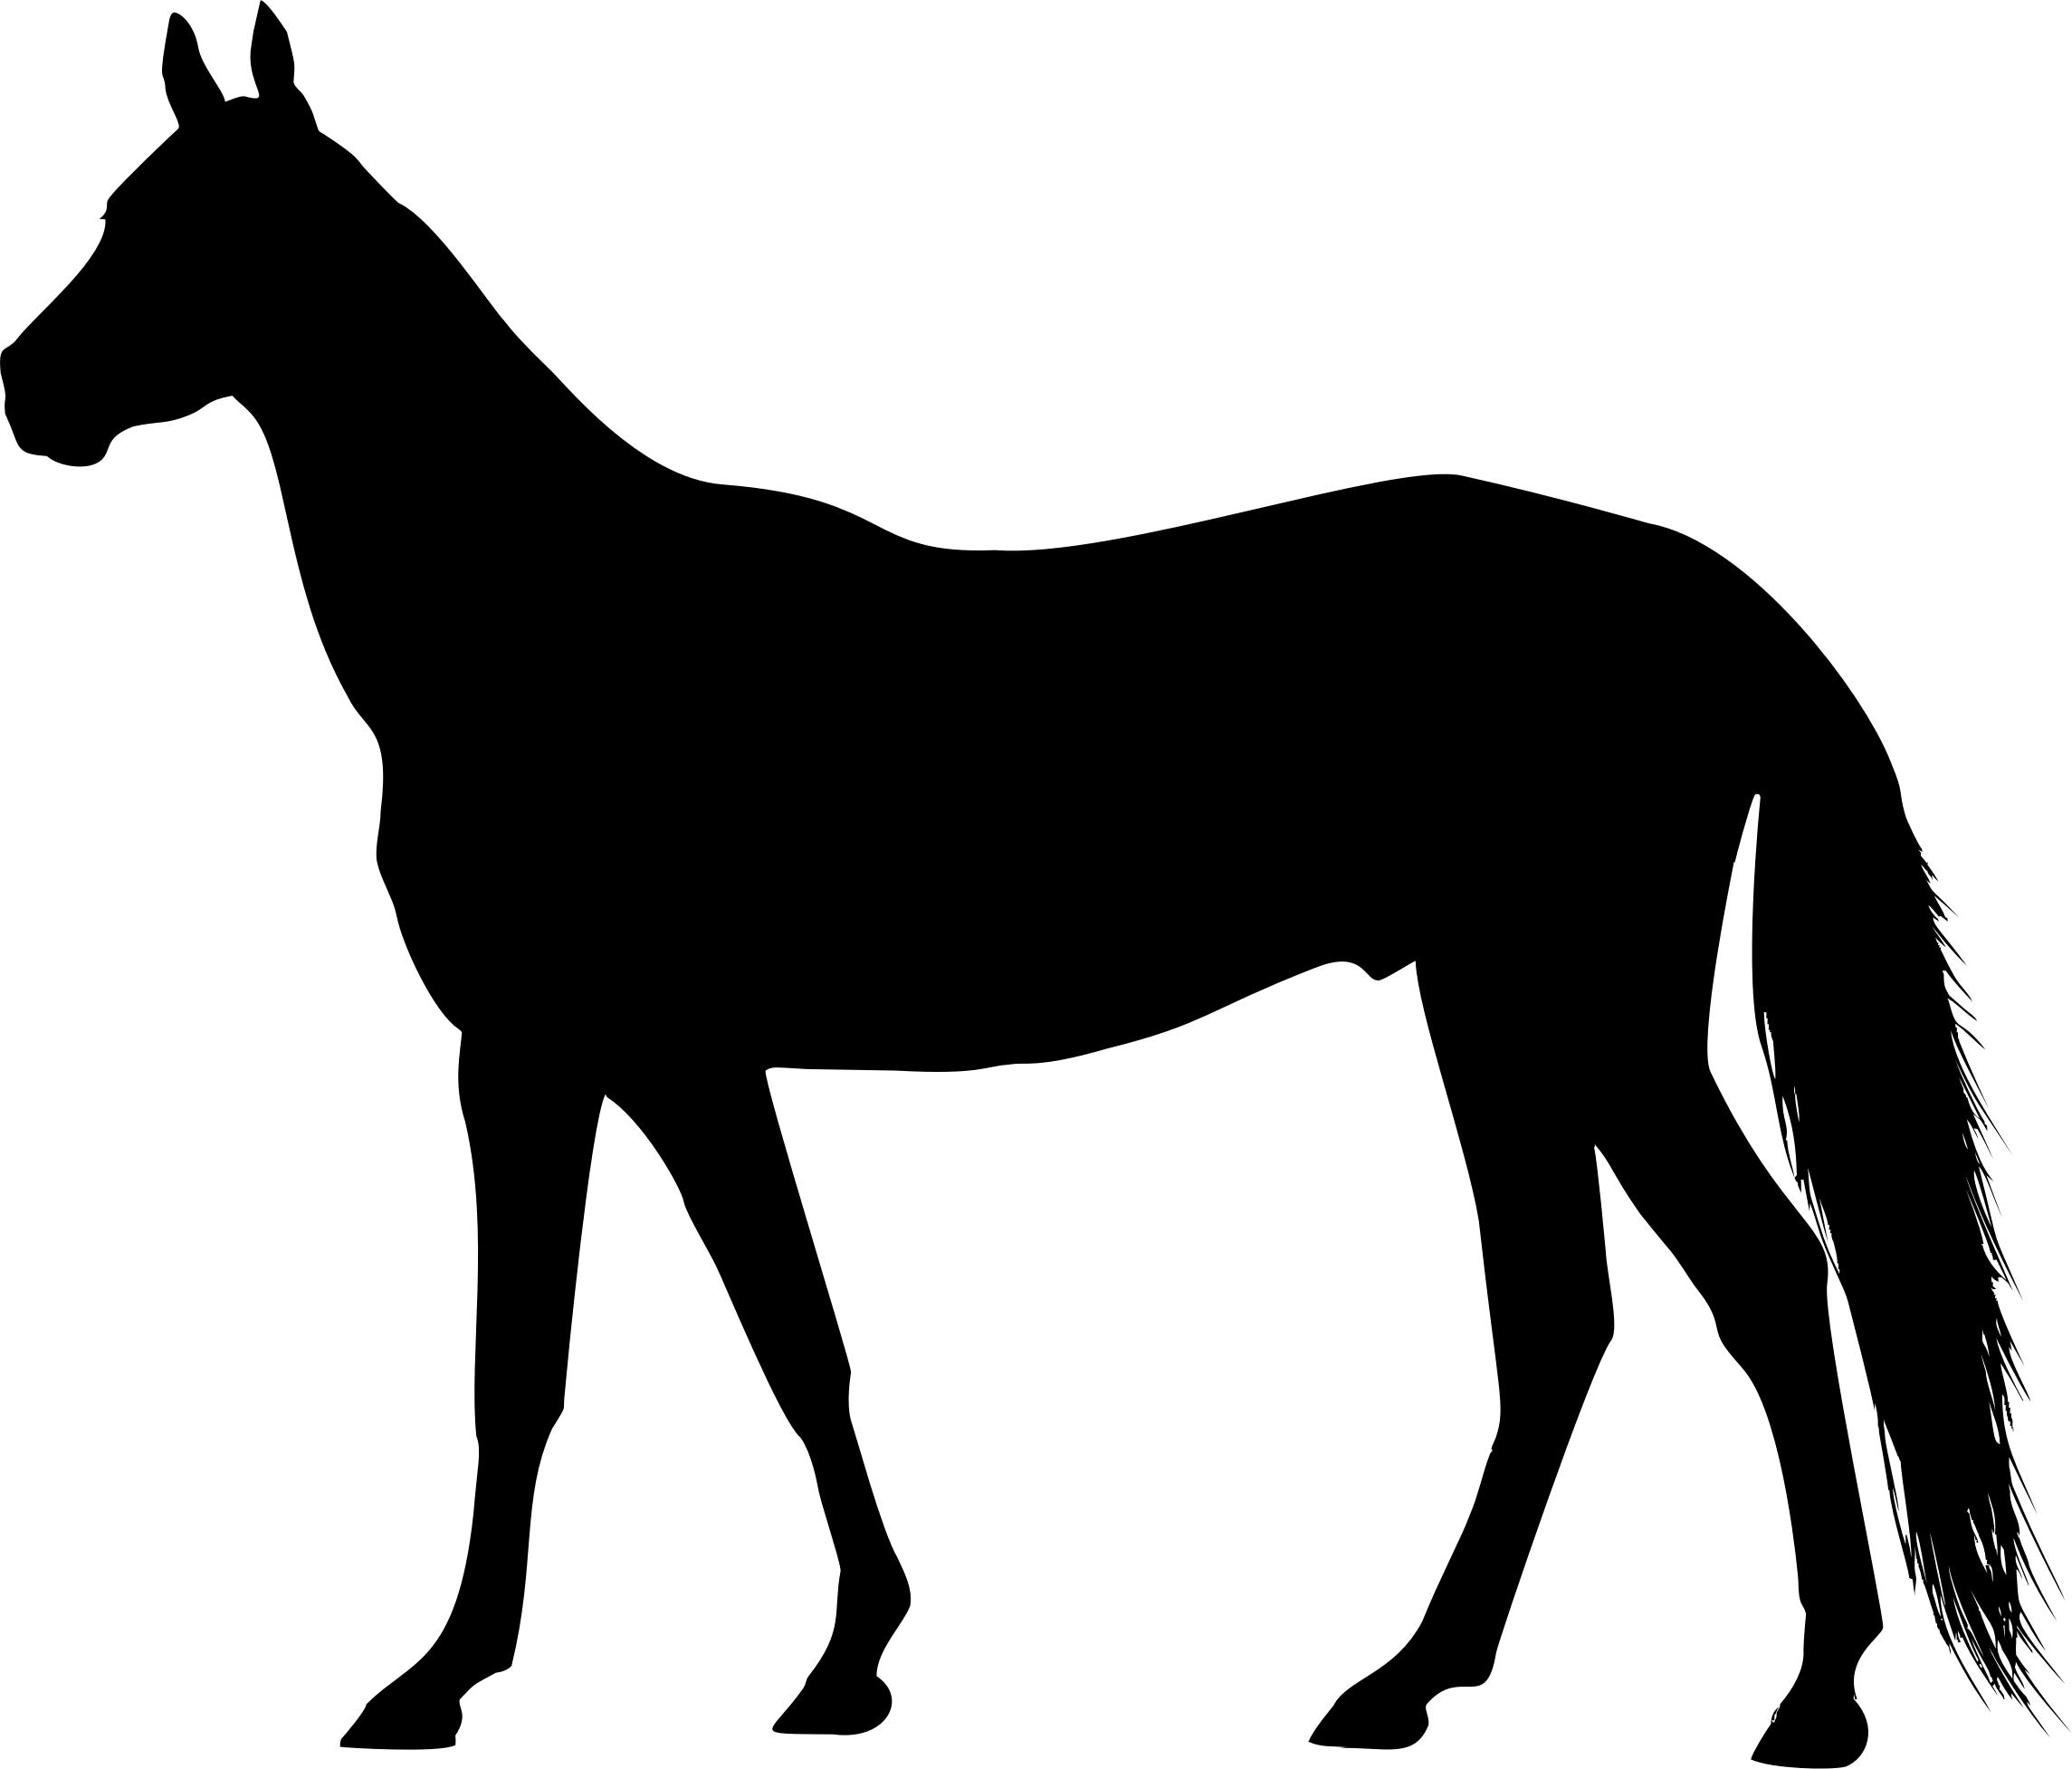 2289x1954 Free Horse Icons Png, Horse Images